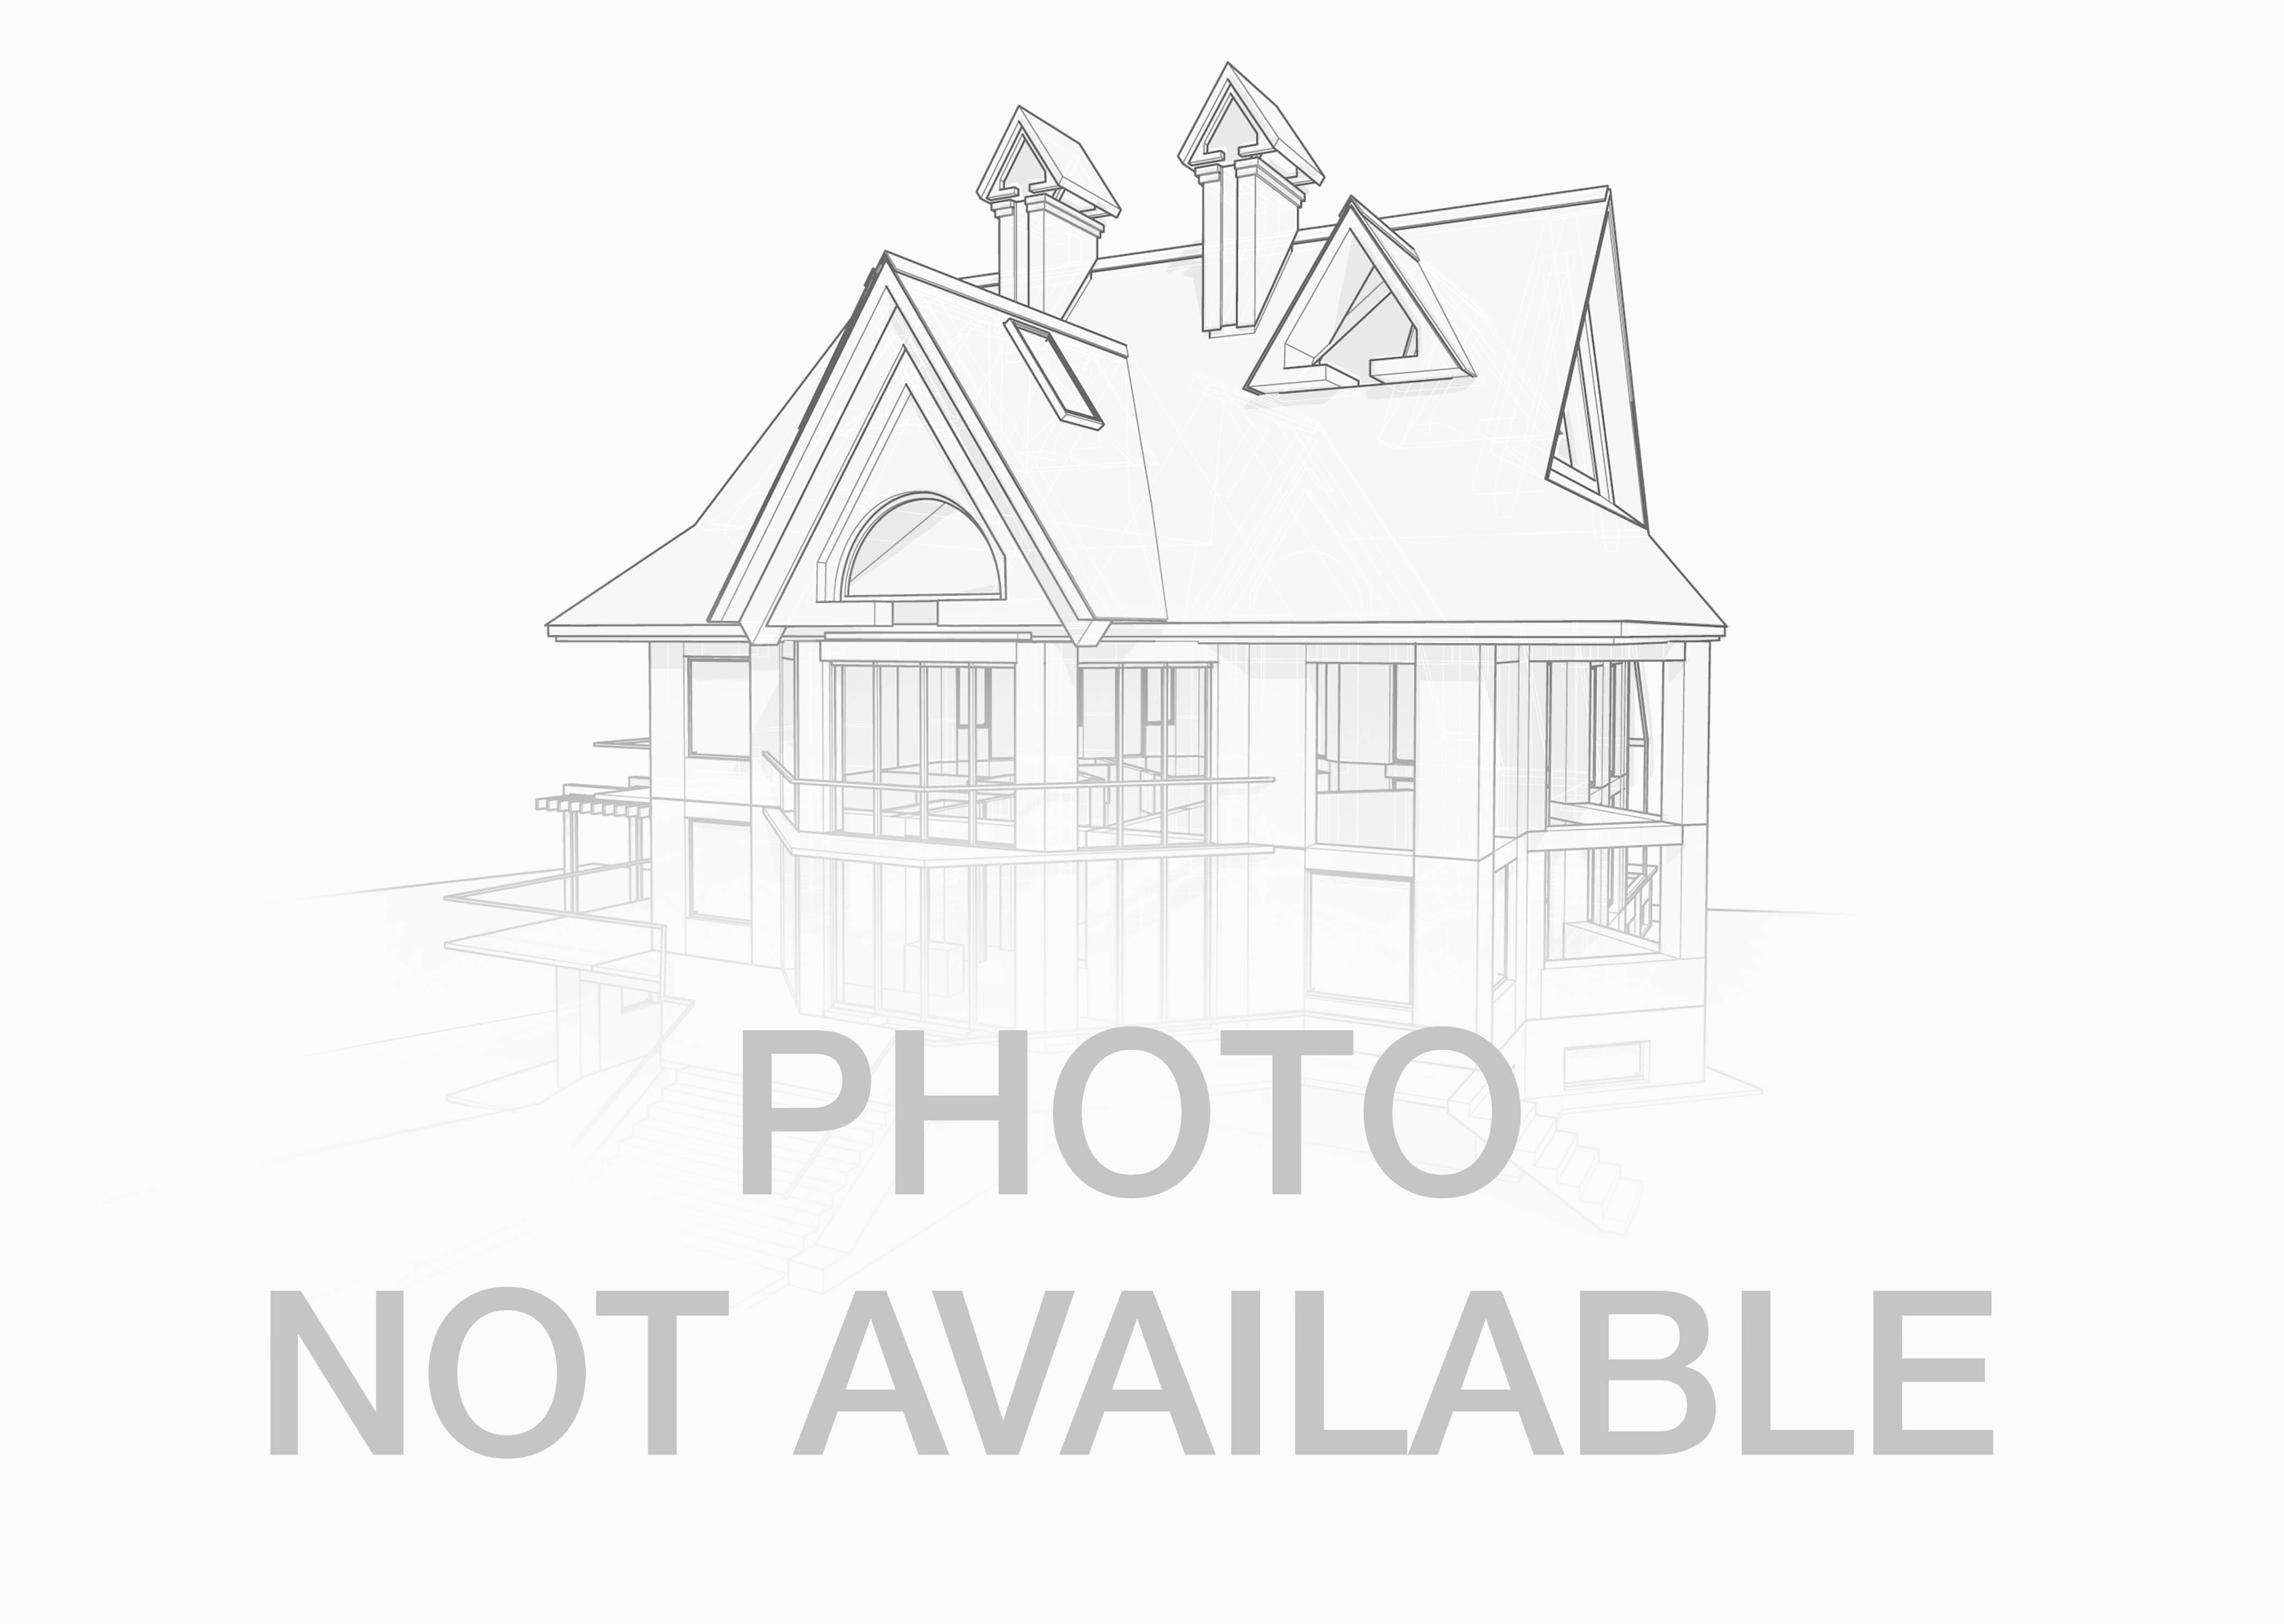 Commercial Property For Sale In Rockingham County Va